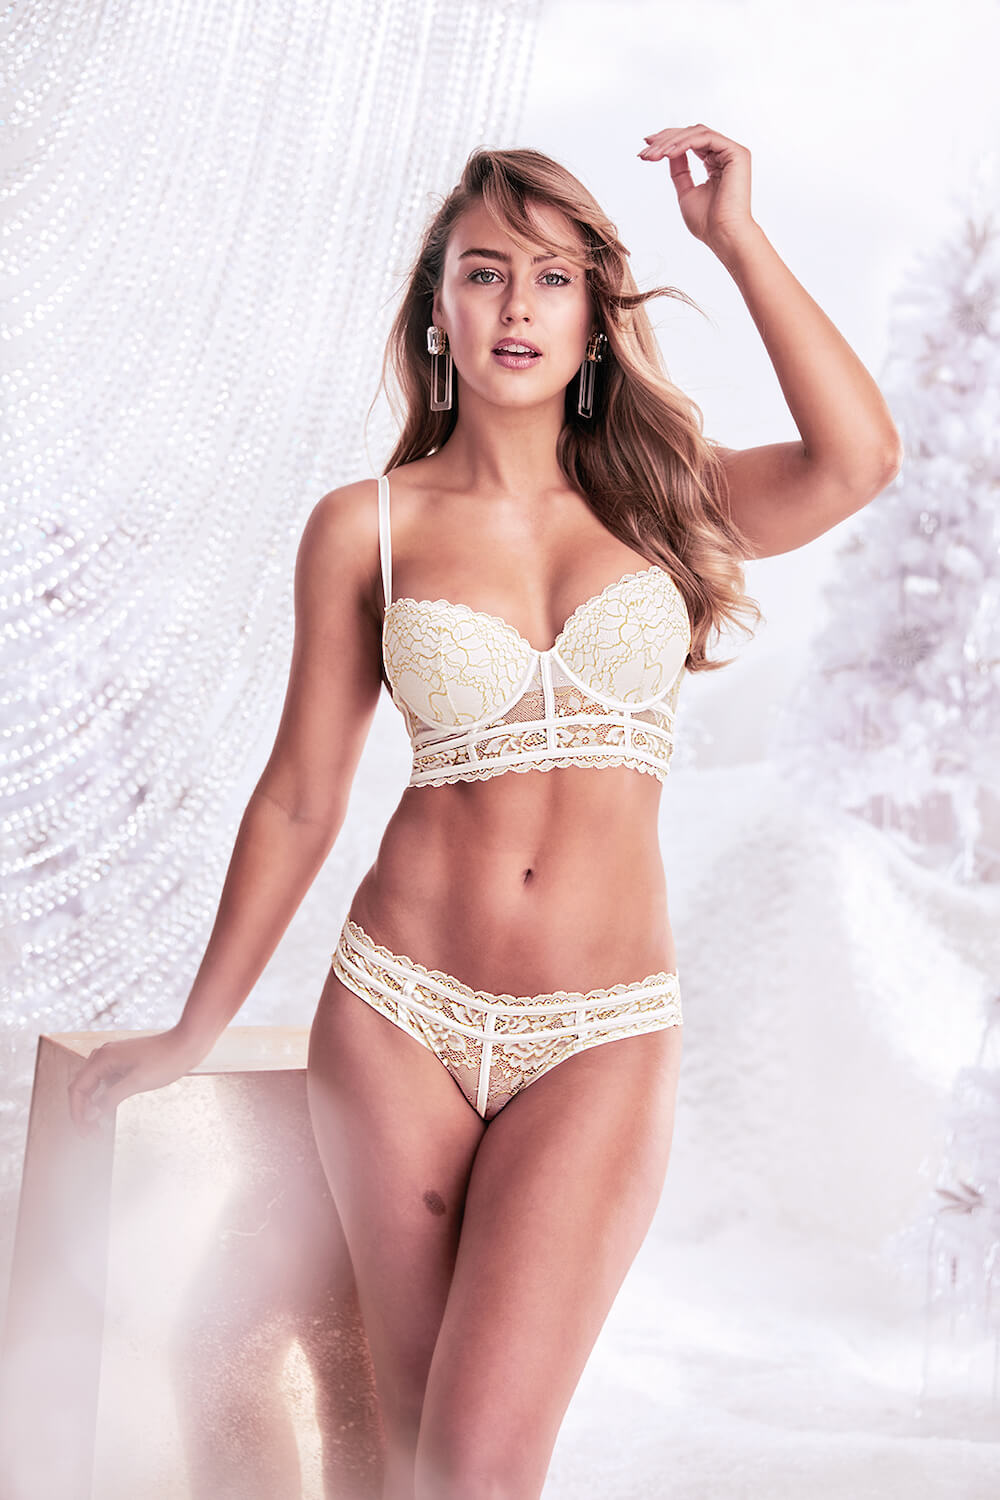 dffea28f96 Steph Claire Smith  Face of  real bodies  Bras N Things 2019 ...